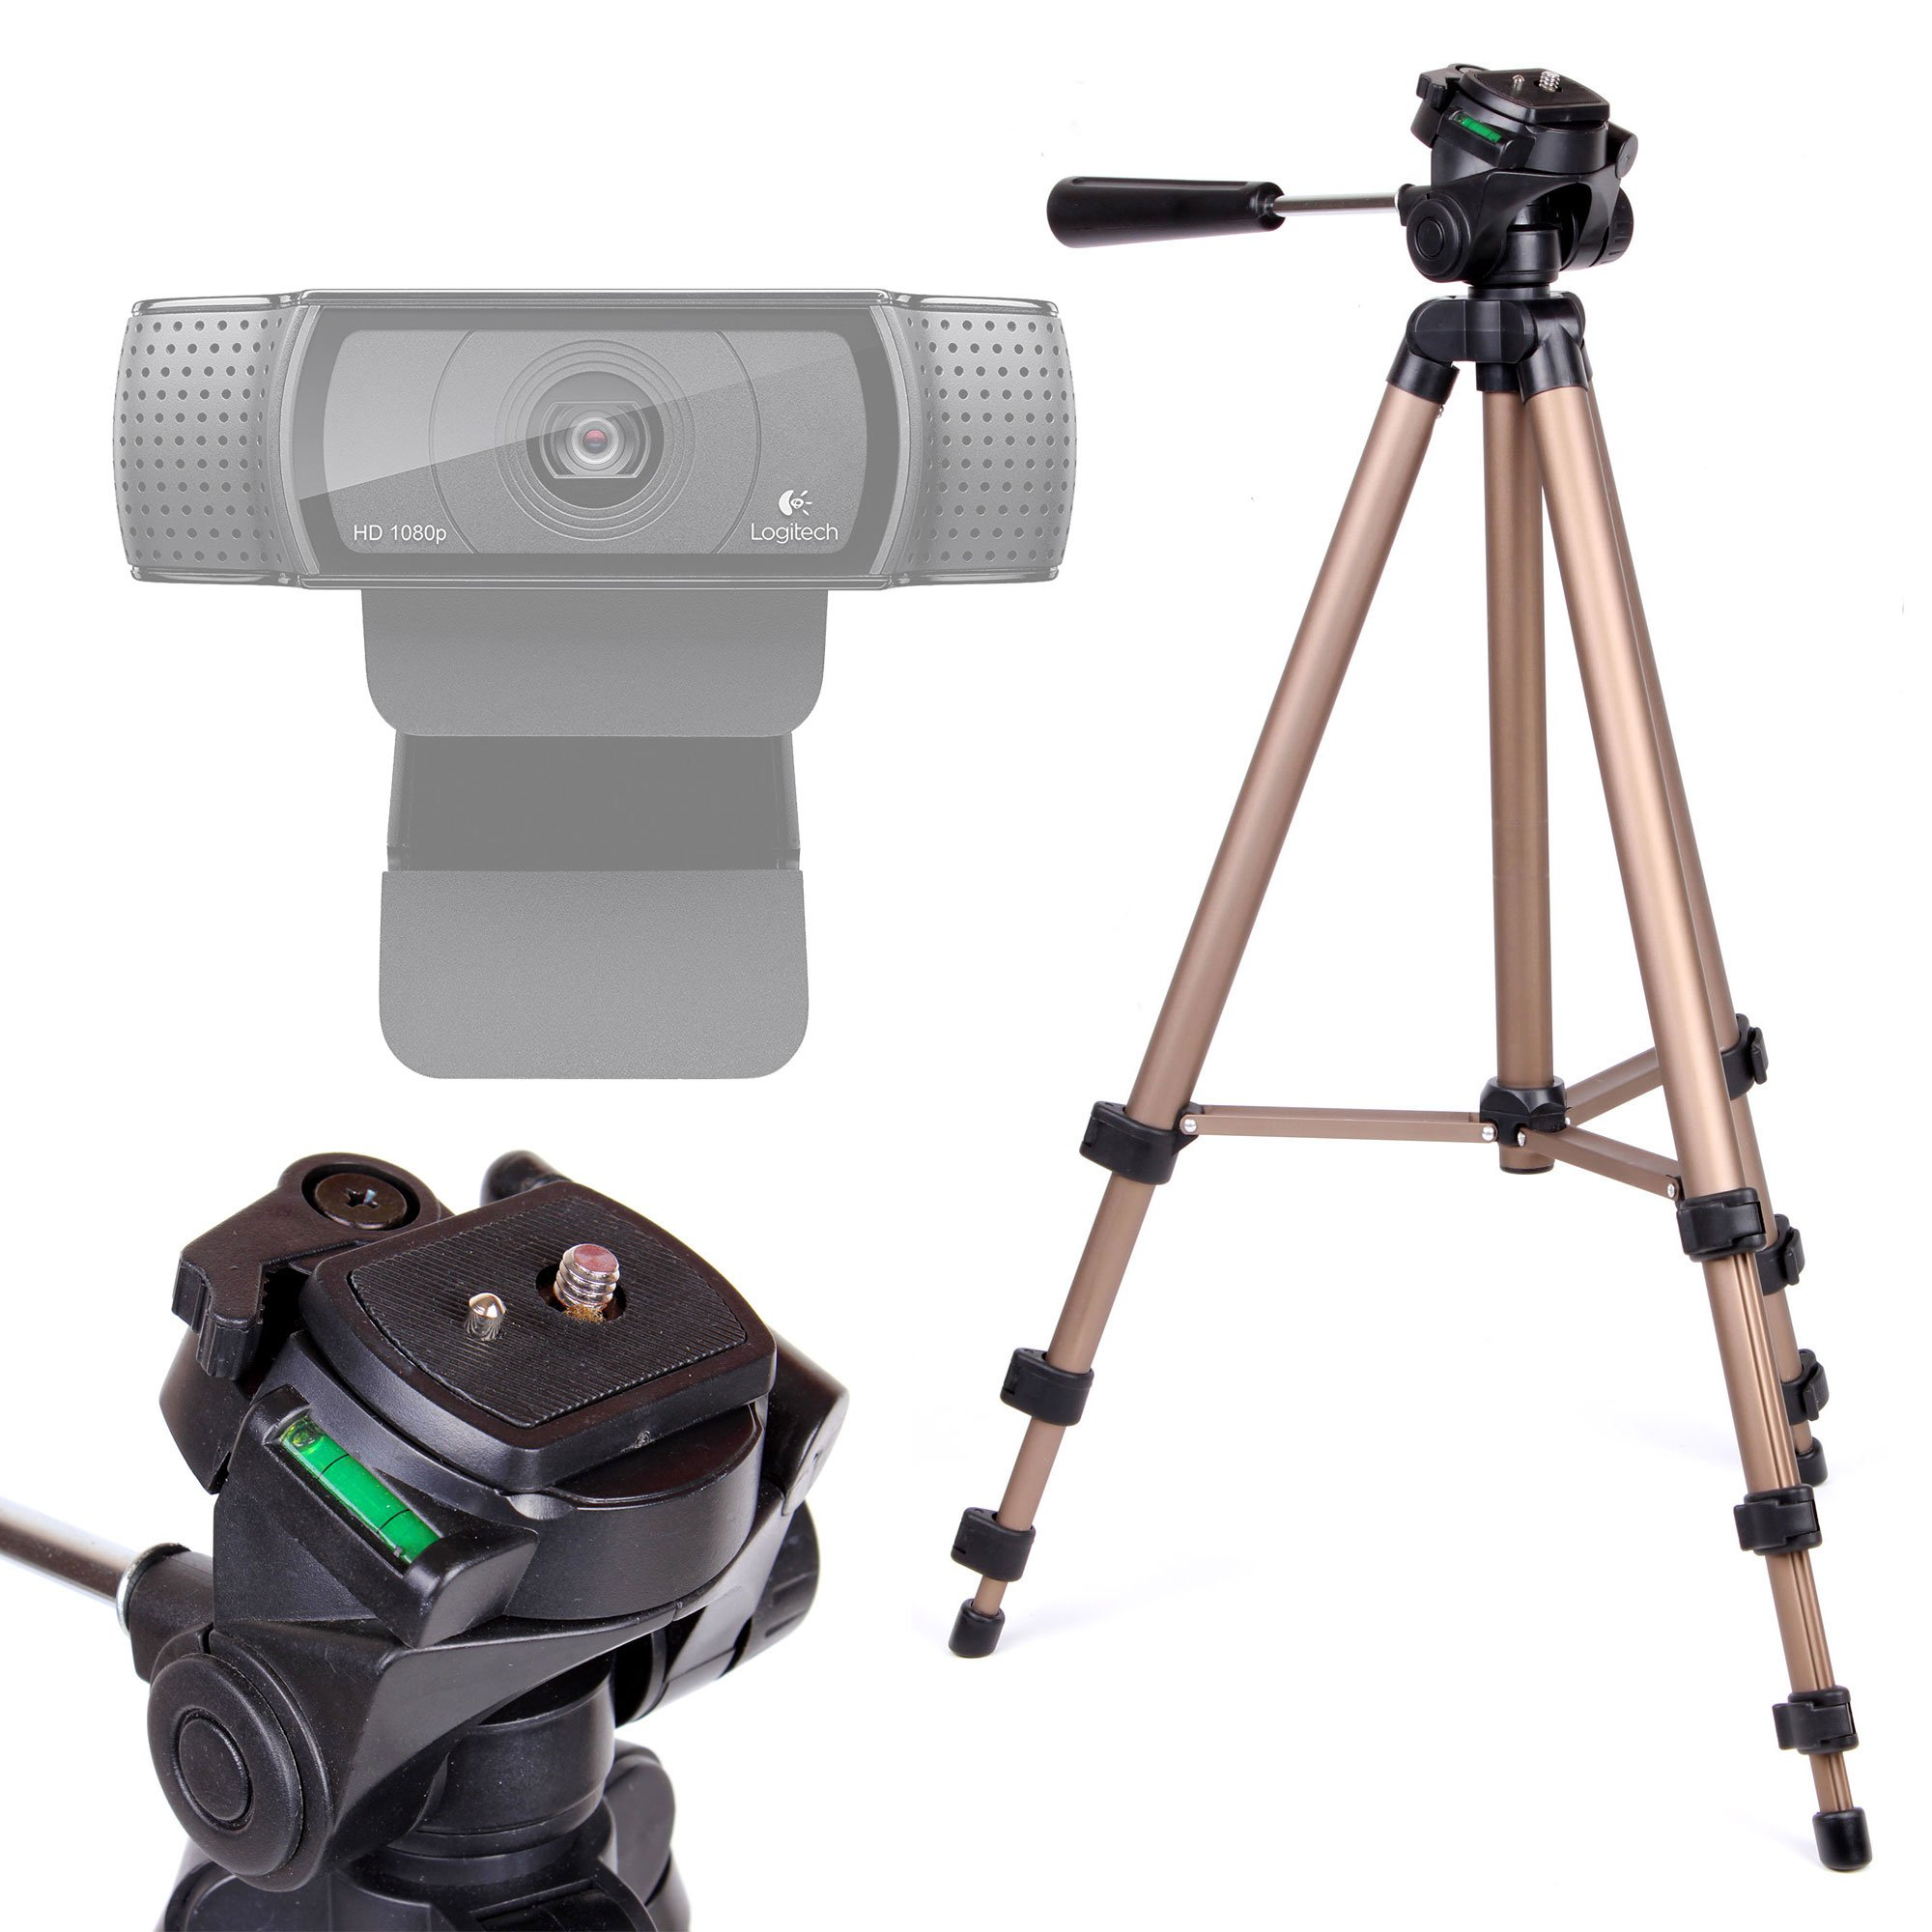 DURAGADGET Webcam Camera Tripod with Extendable Legs and Ball-Tilt Head in Black & Gold for the Logitech HD Pro C920, C922 Pro Stream Webcam Full HD 1080p & C170